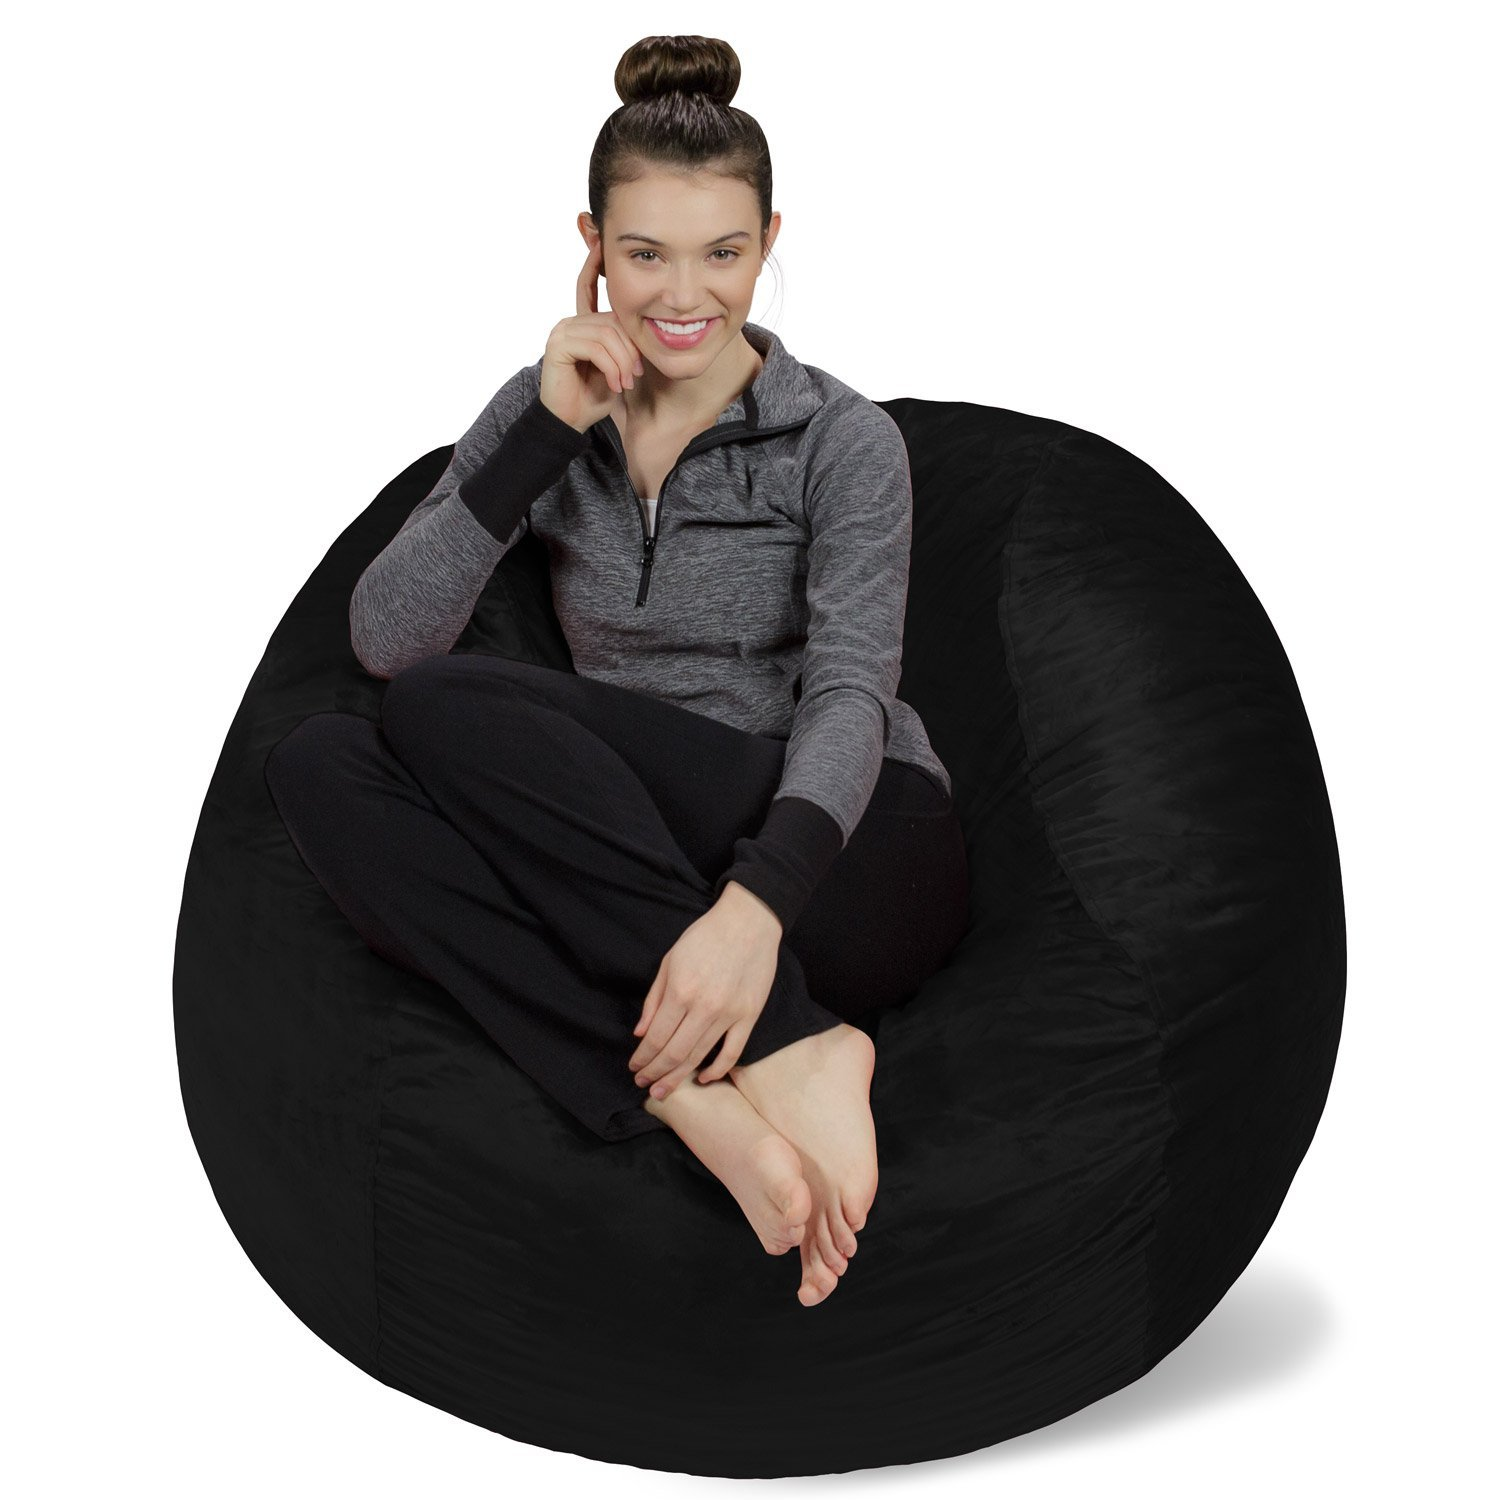 Sofa Sack - Bean Bags Memory Foam Bean Bag Chair, 4-Feet, Black